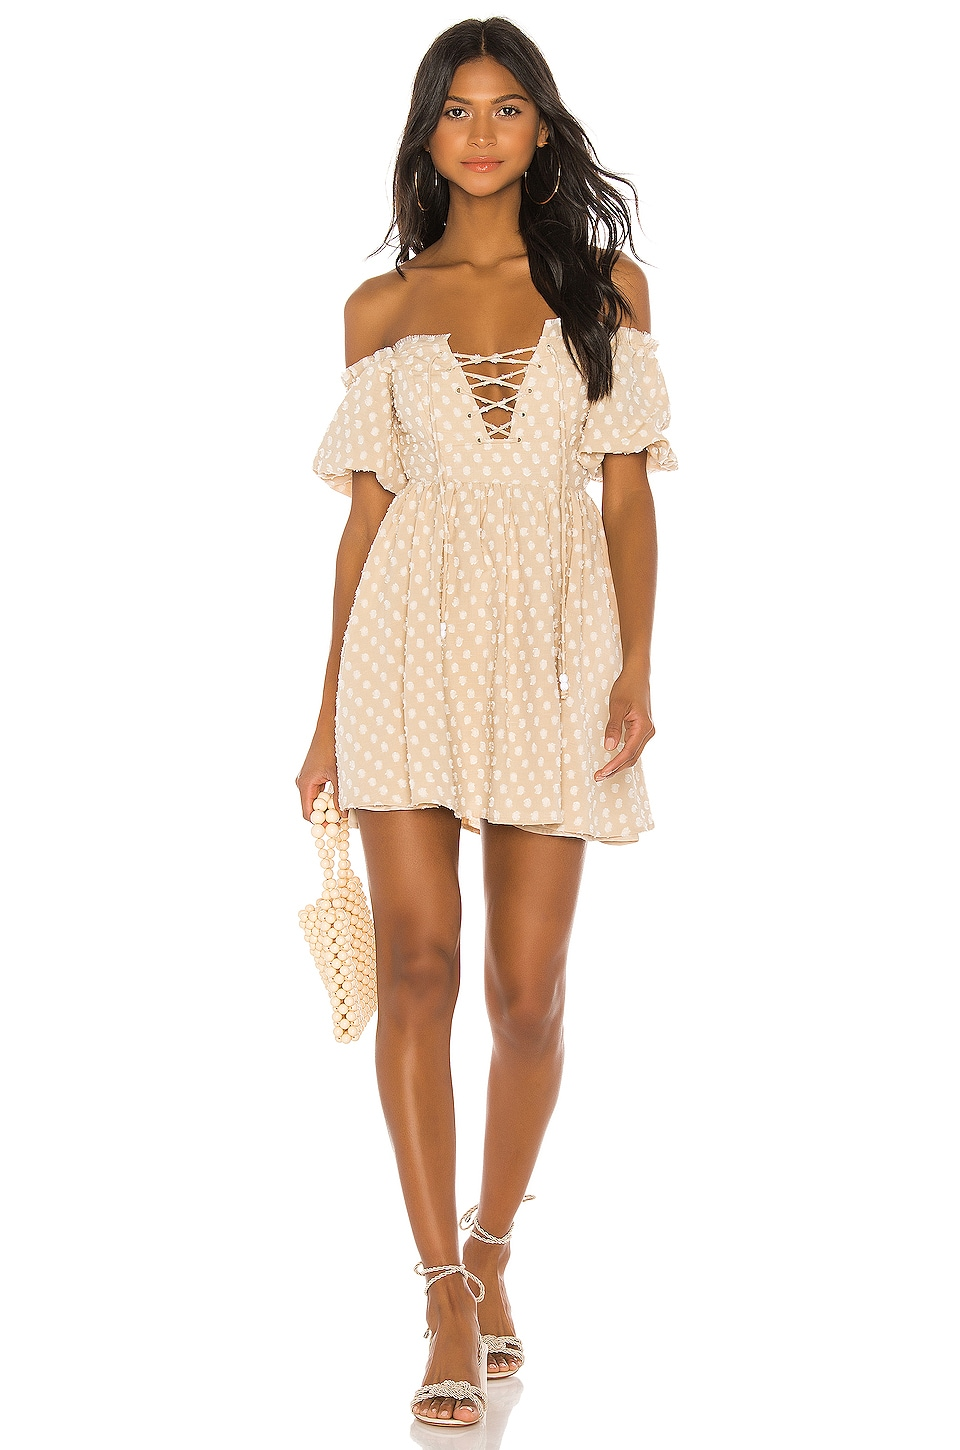 House of Harlow 1960 X REVOLVE Frans Dress in Natural